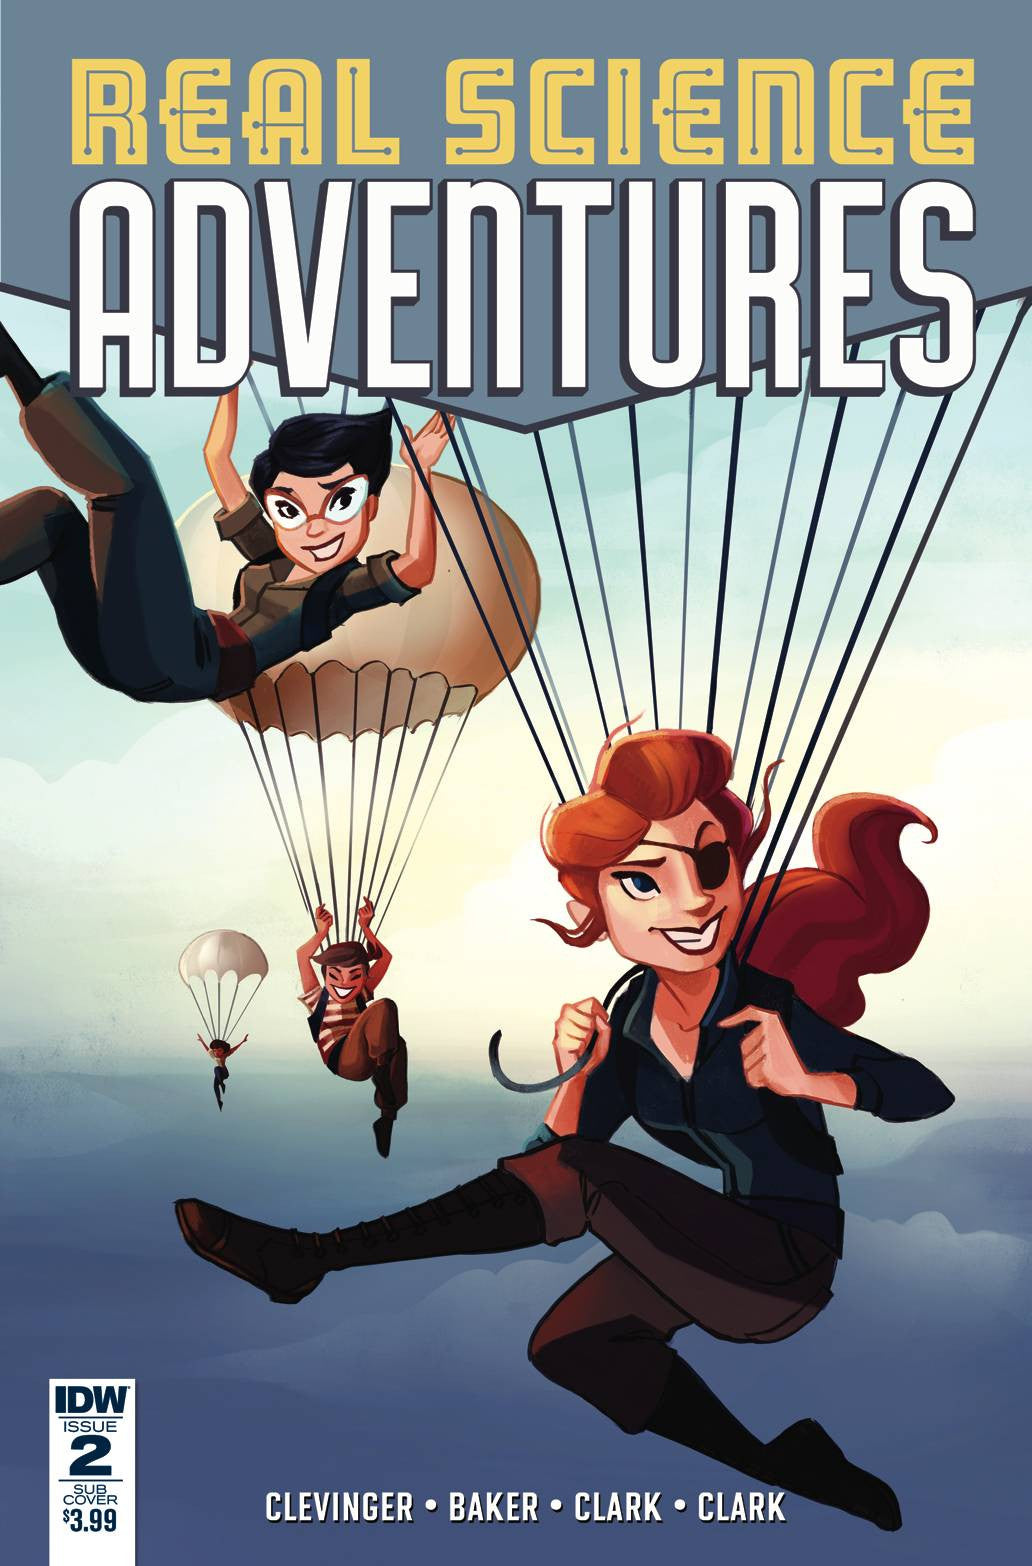 REAL SCIENCE ADVENTURES FLYING SHE-DEVILS #2